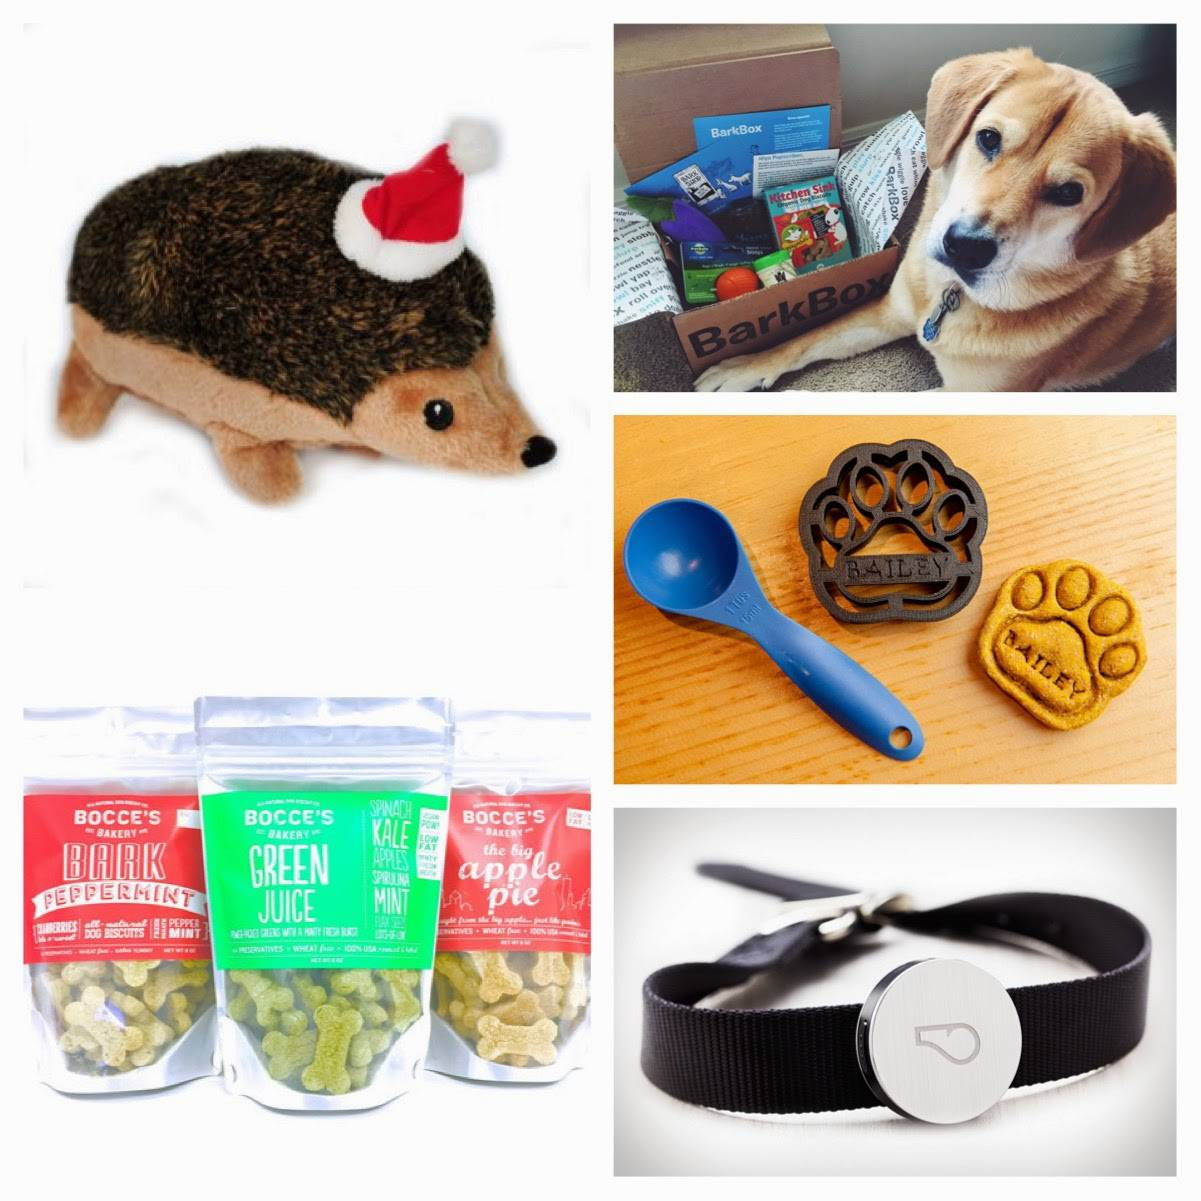 Christmas Gift Guide 2014: 5 Picks for Dogs - Small Towns & City Lights